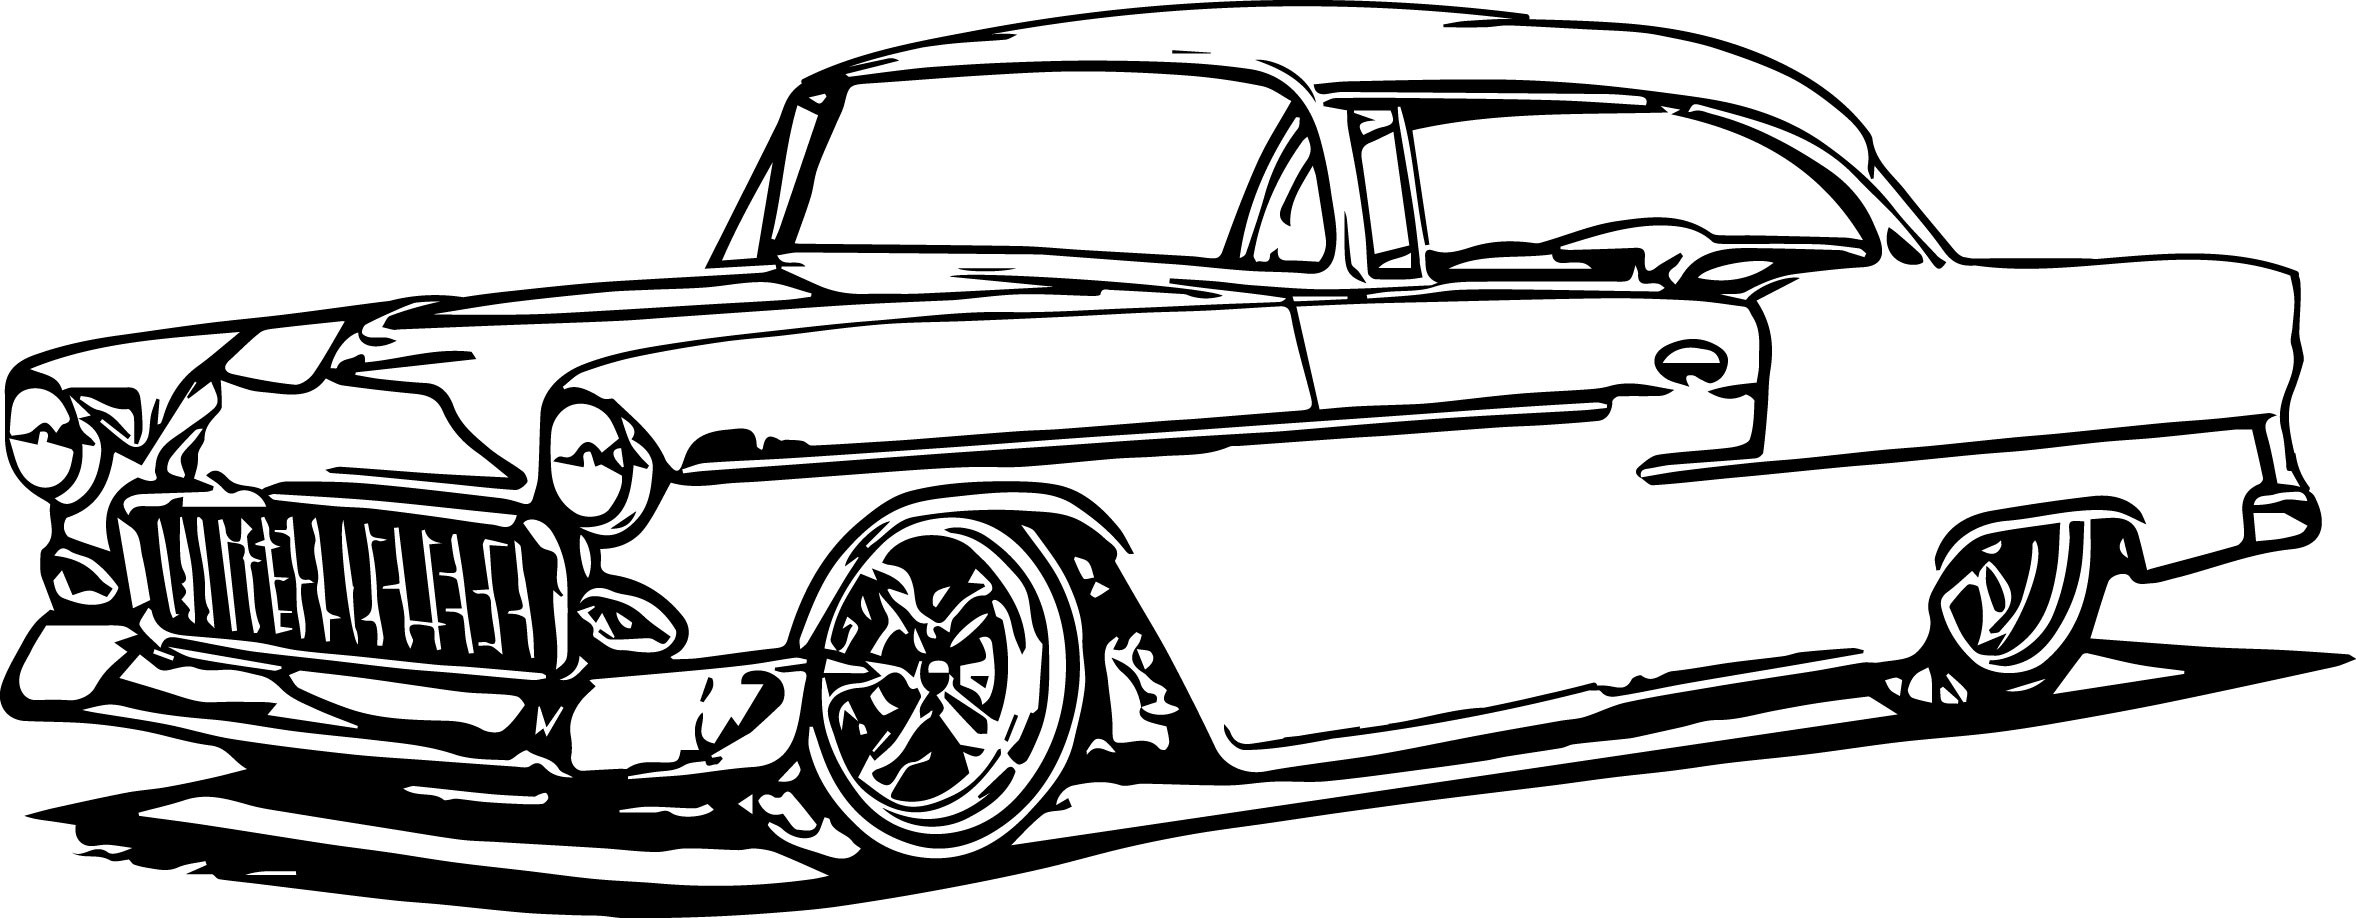 coloring hot rod hot rod cars 1936 chevy hot rod cars coloring pages coloring rod hot